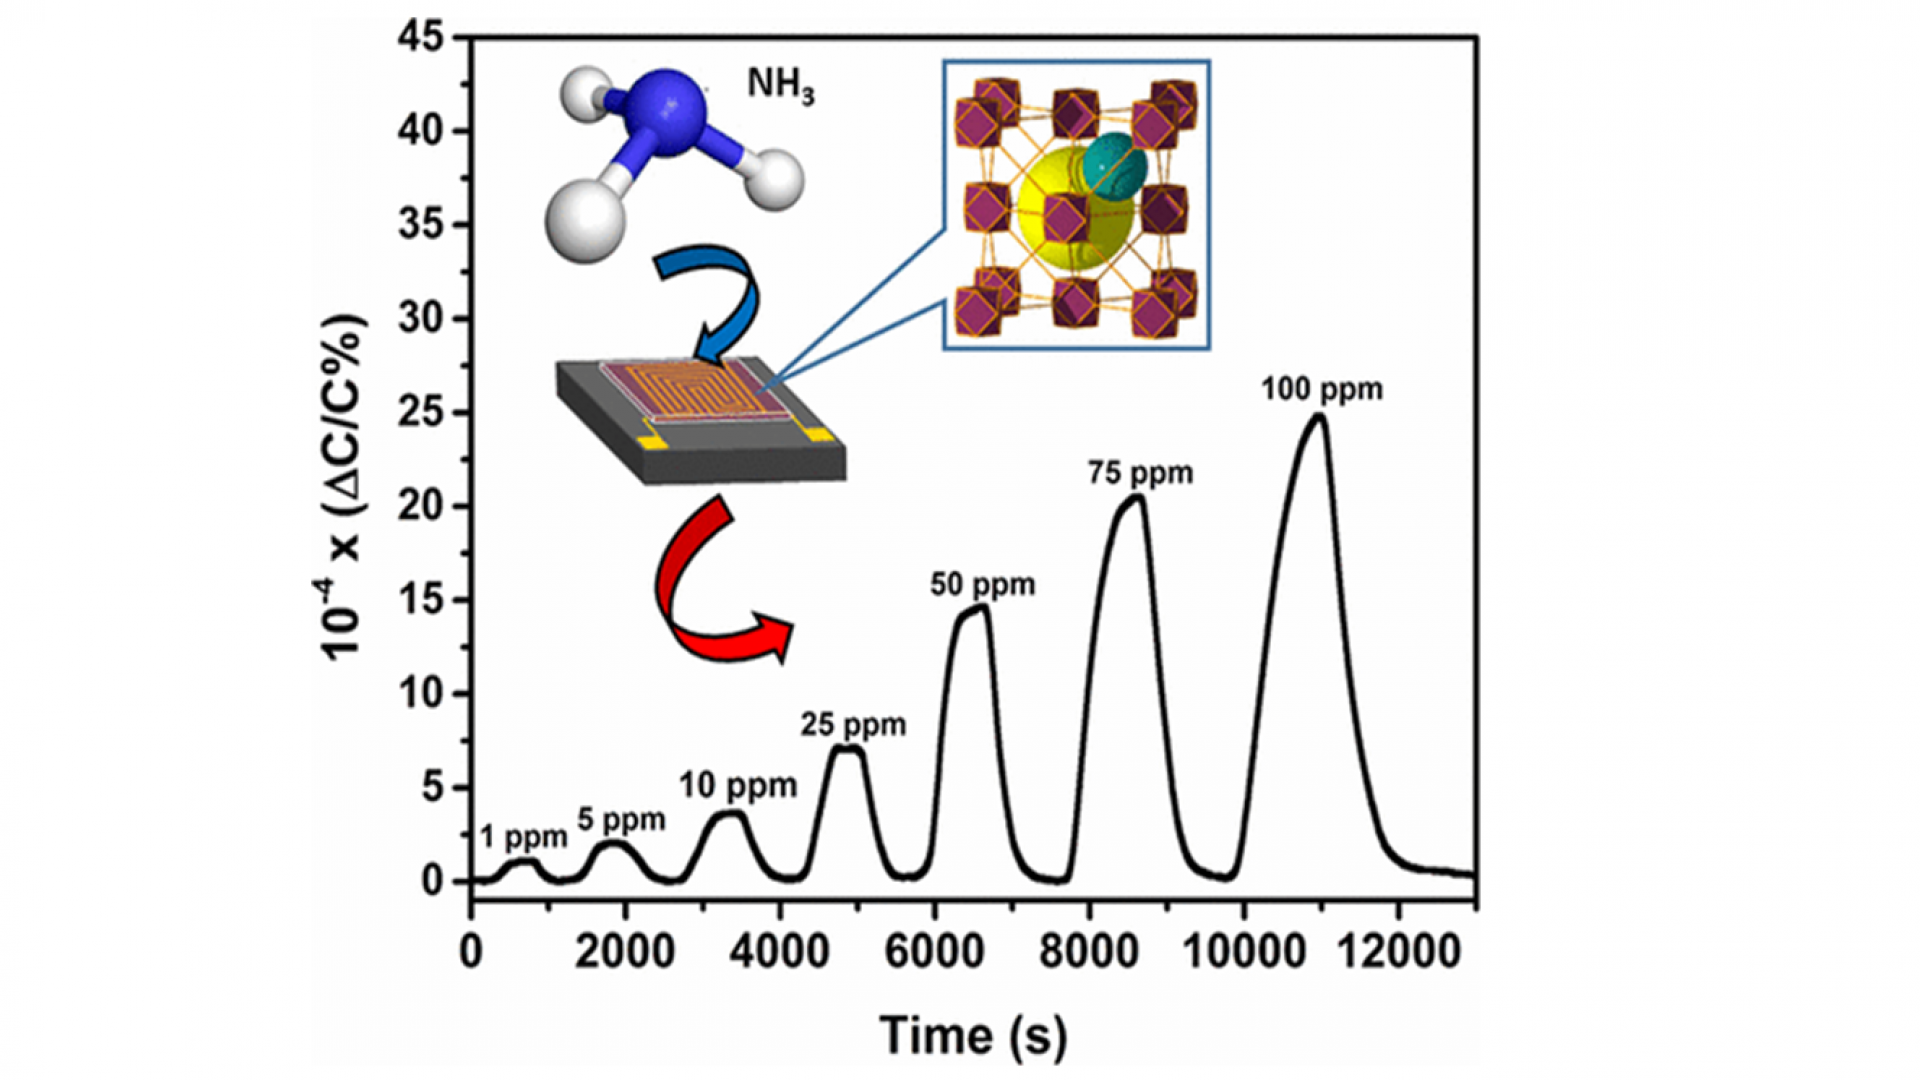 MOFs for the sensitive detection of ammonia: Deployment of fcu-MOF thin films as effective chemical capacitive sensors